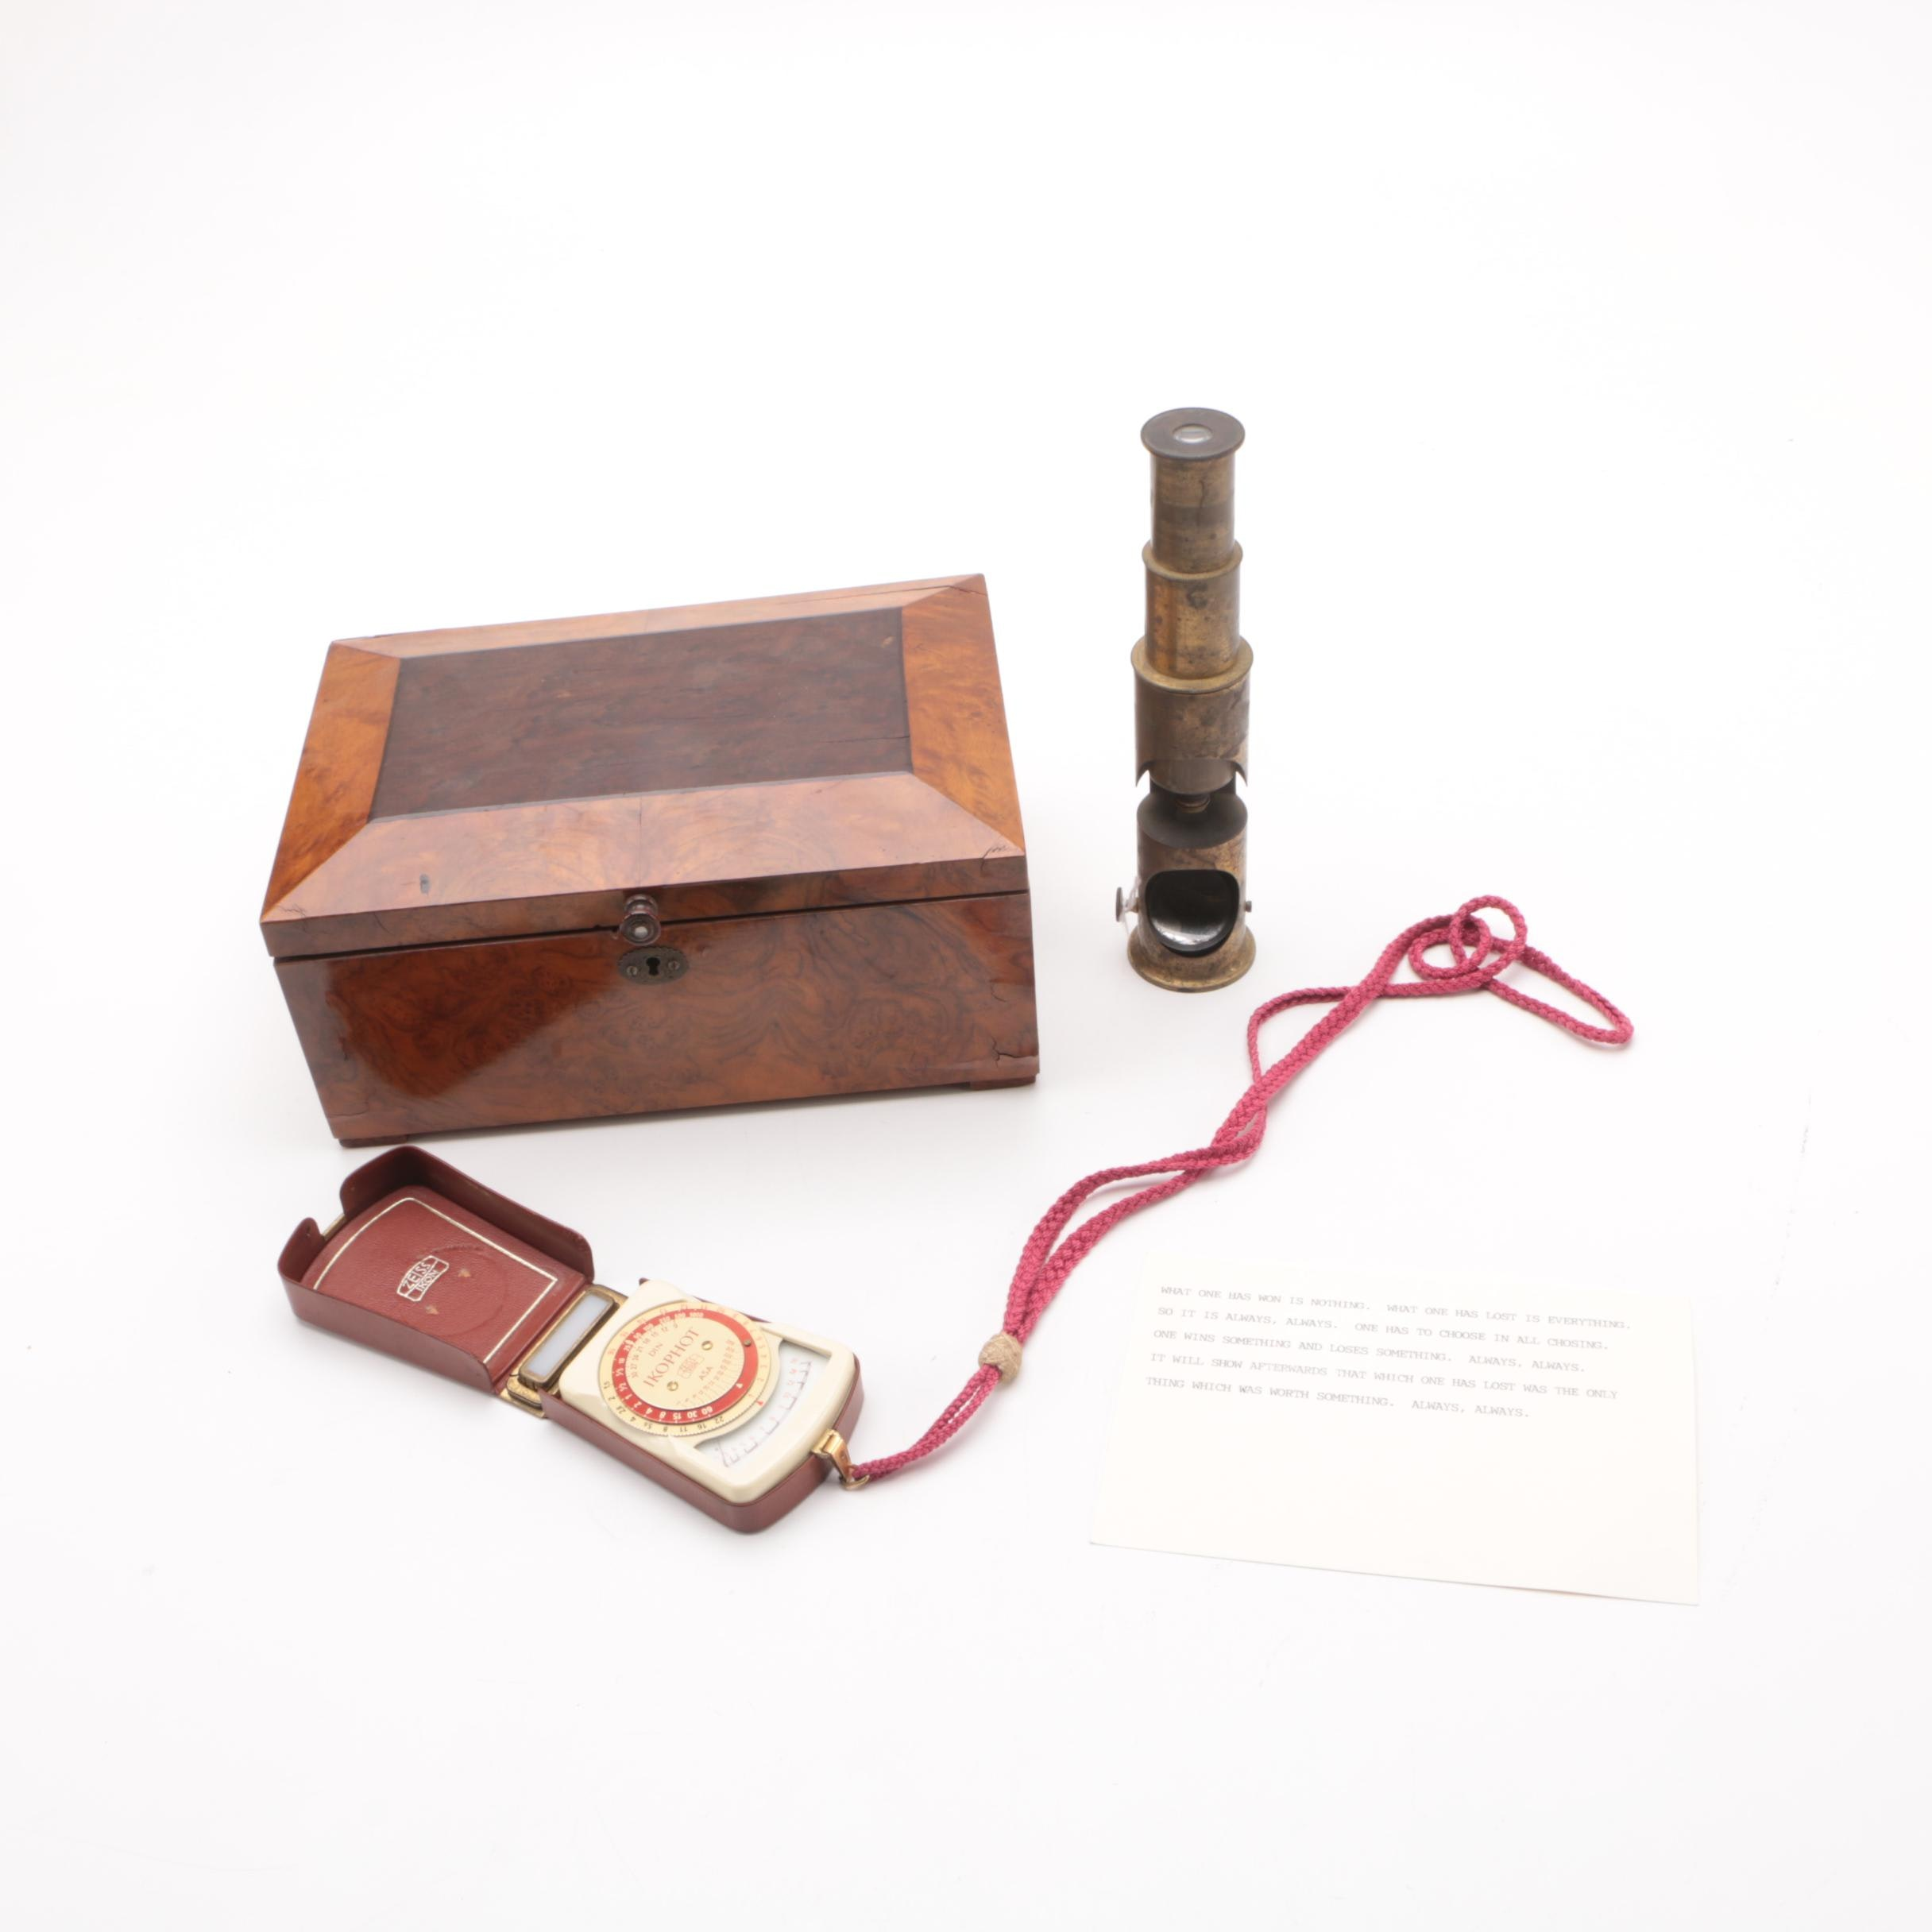 Antique Drum Microscope,Vintage Ikophot Light Meter and Wooden Box